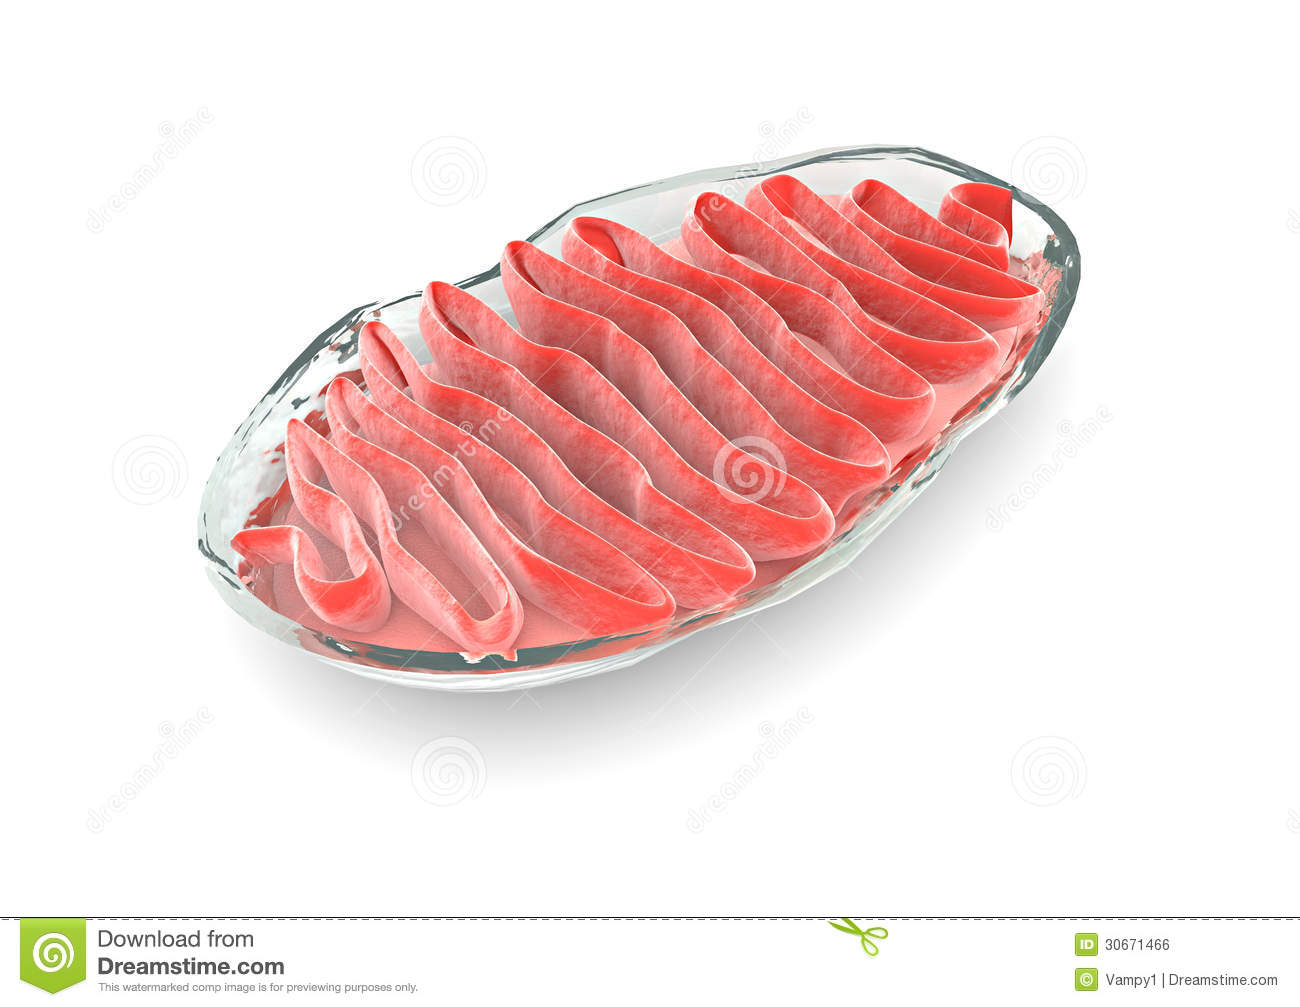 Section Mitochondria, Cell Royalty Free Stock Image - Image: 30671466